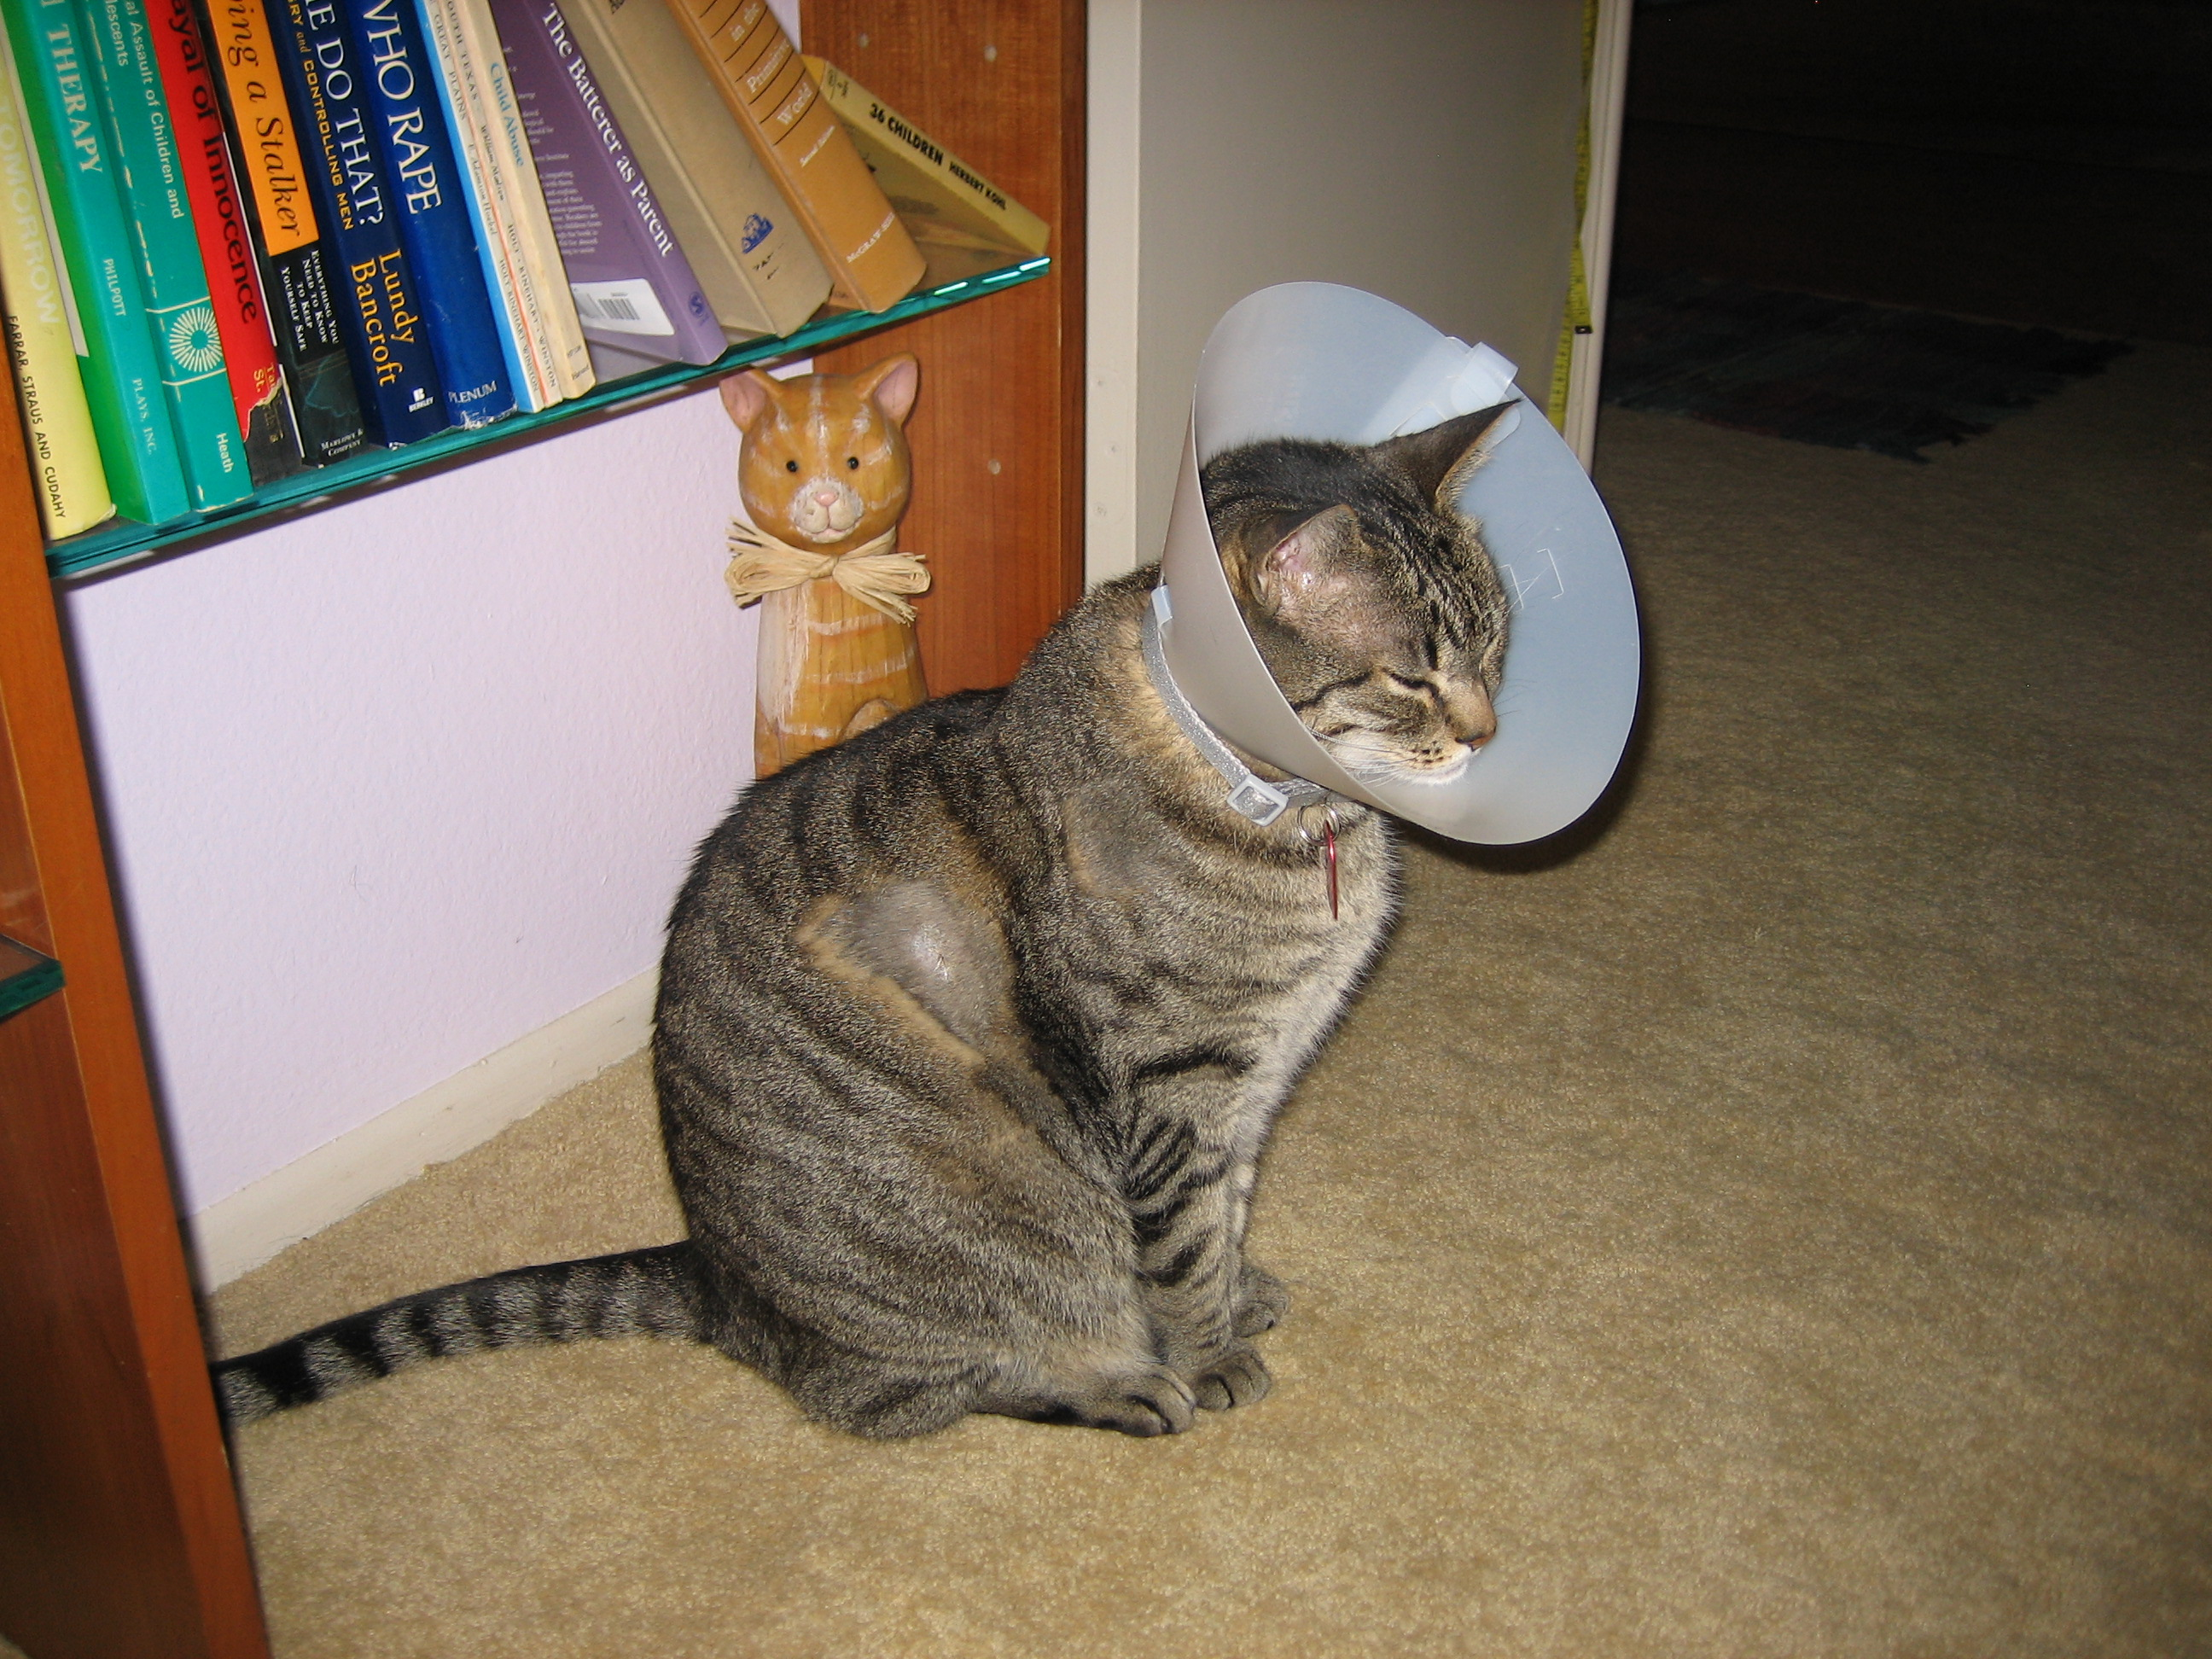 CANCER: MAST CELL TUMORS | Cat Authors